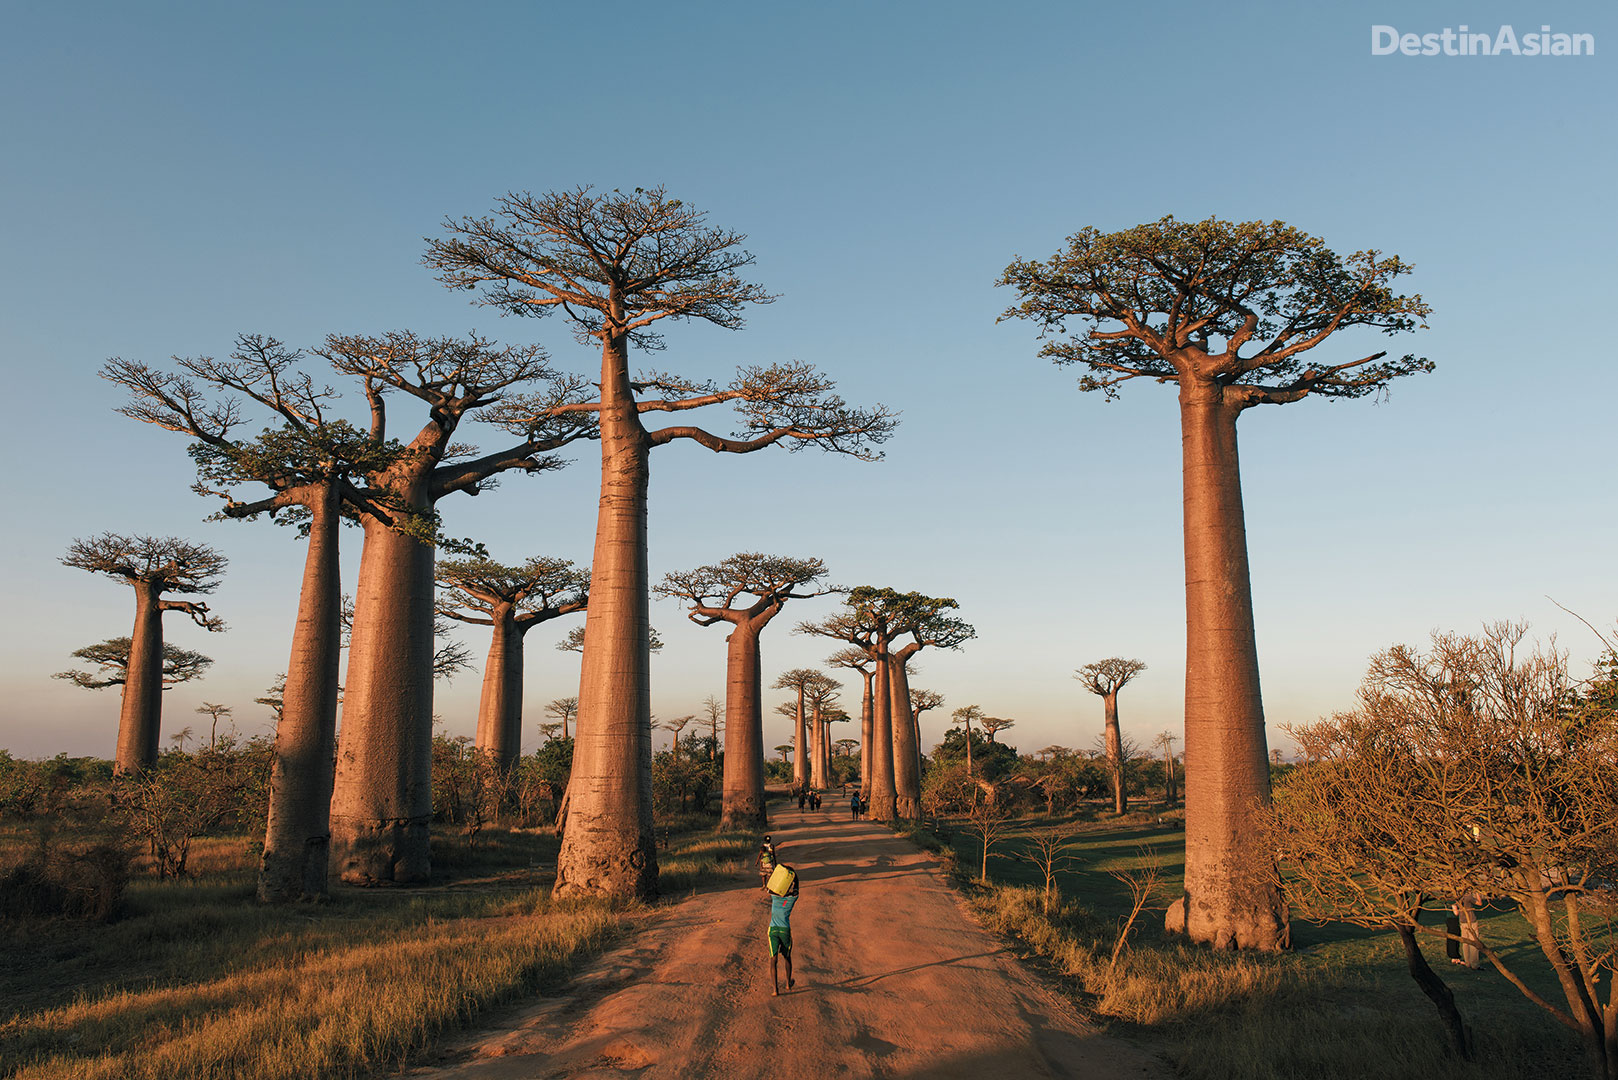 The Avenue of the Baobabs is one of Madagascar's most memorable sights.